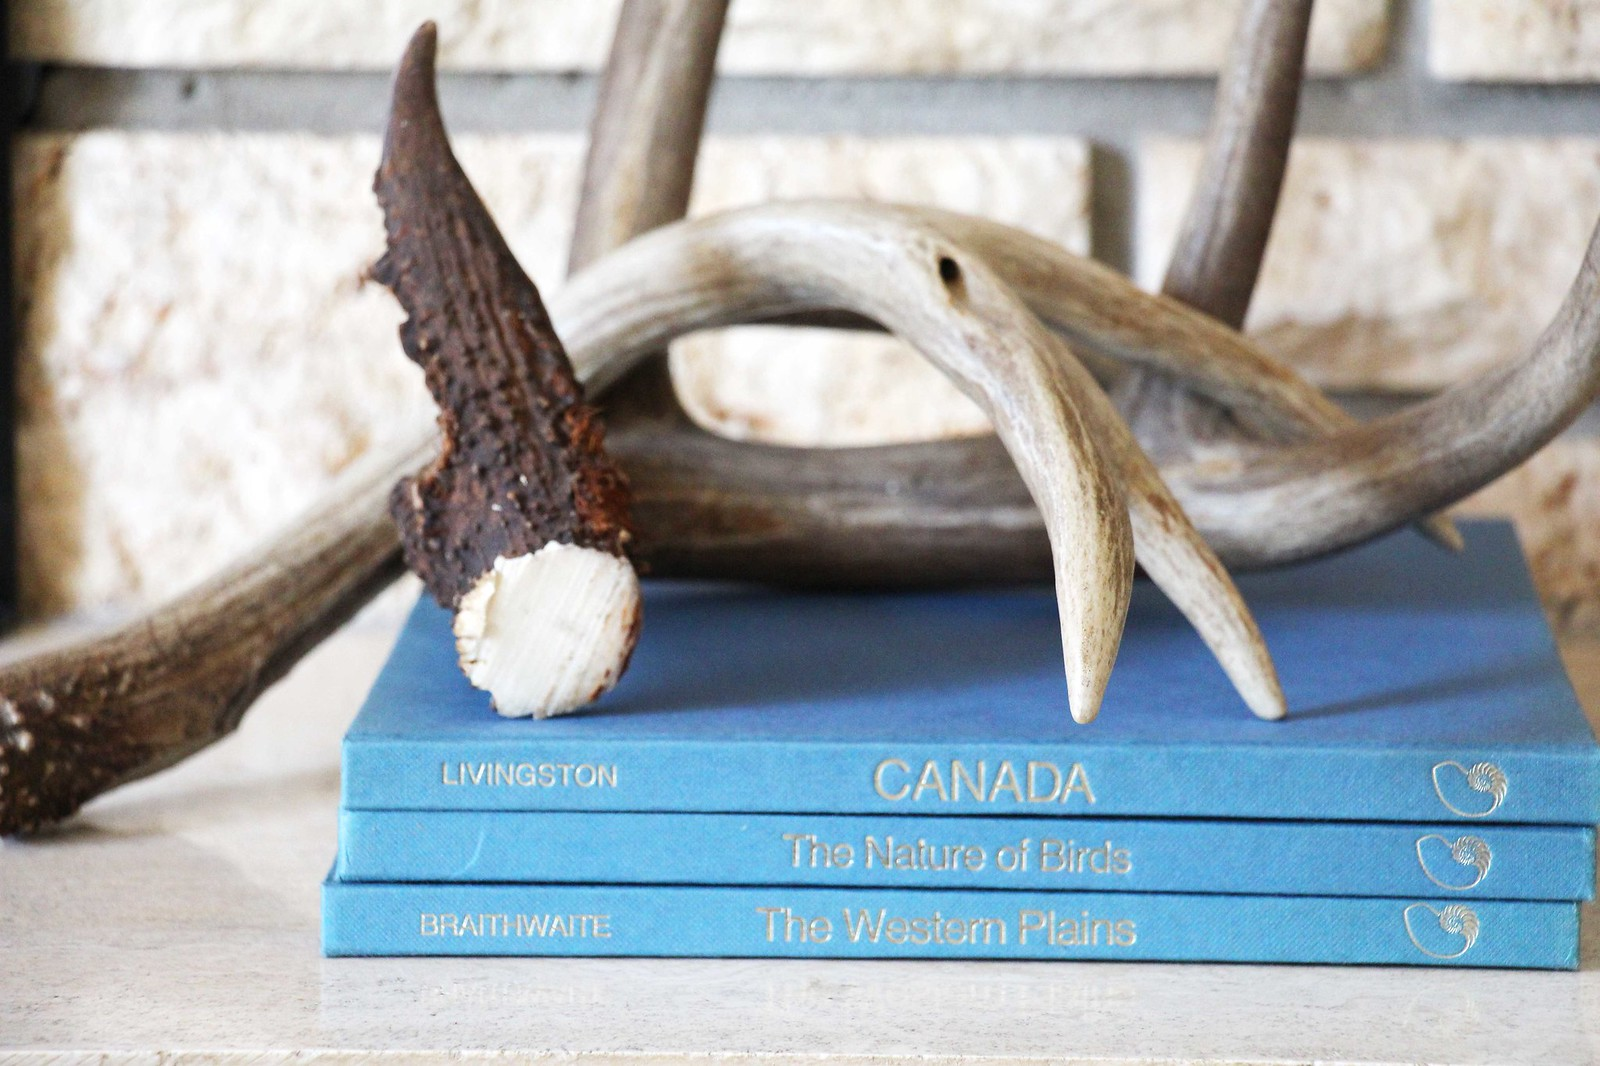 antlers on a stack of books